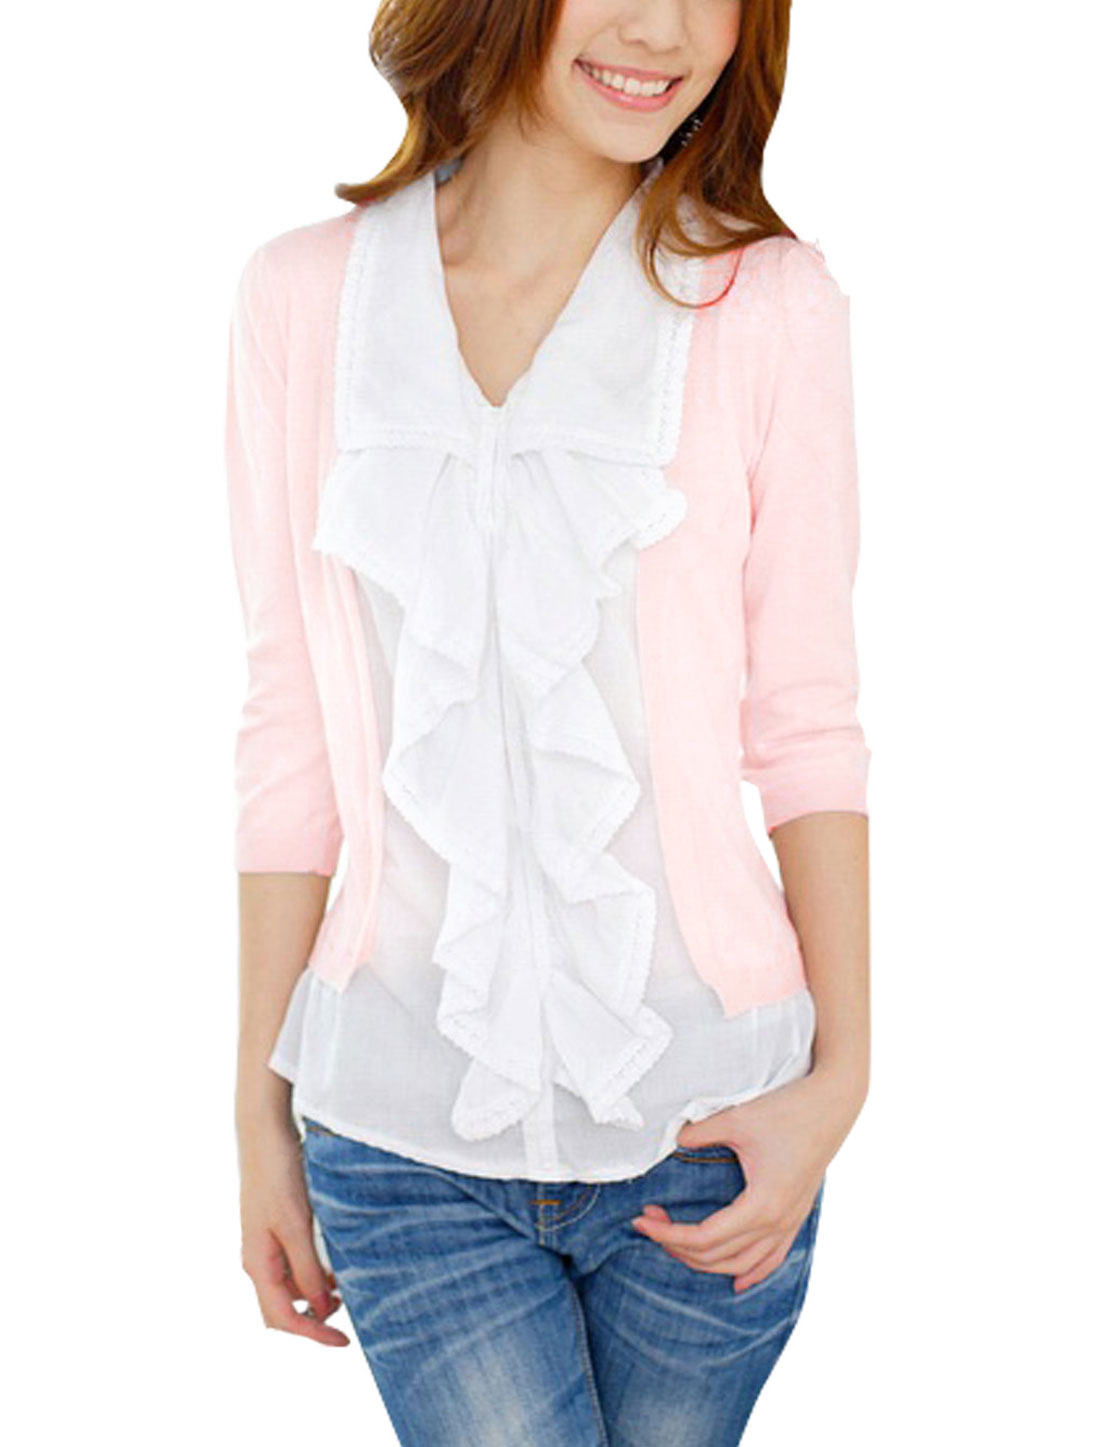 Ladies Pink White 3/4 Sleeve Ruffle Detail Pullover Casual Blouse XL